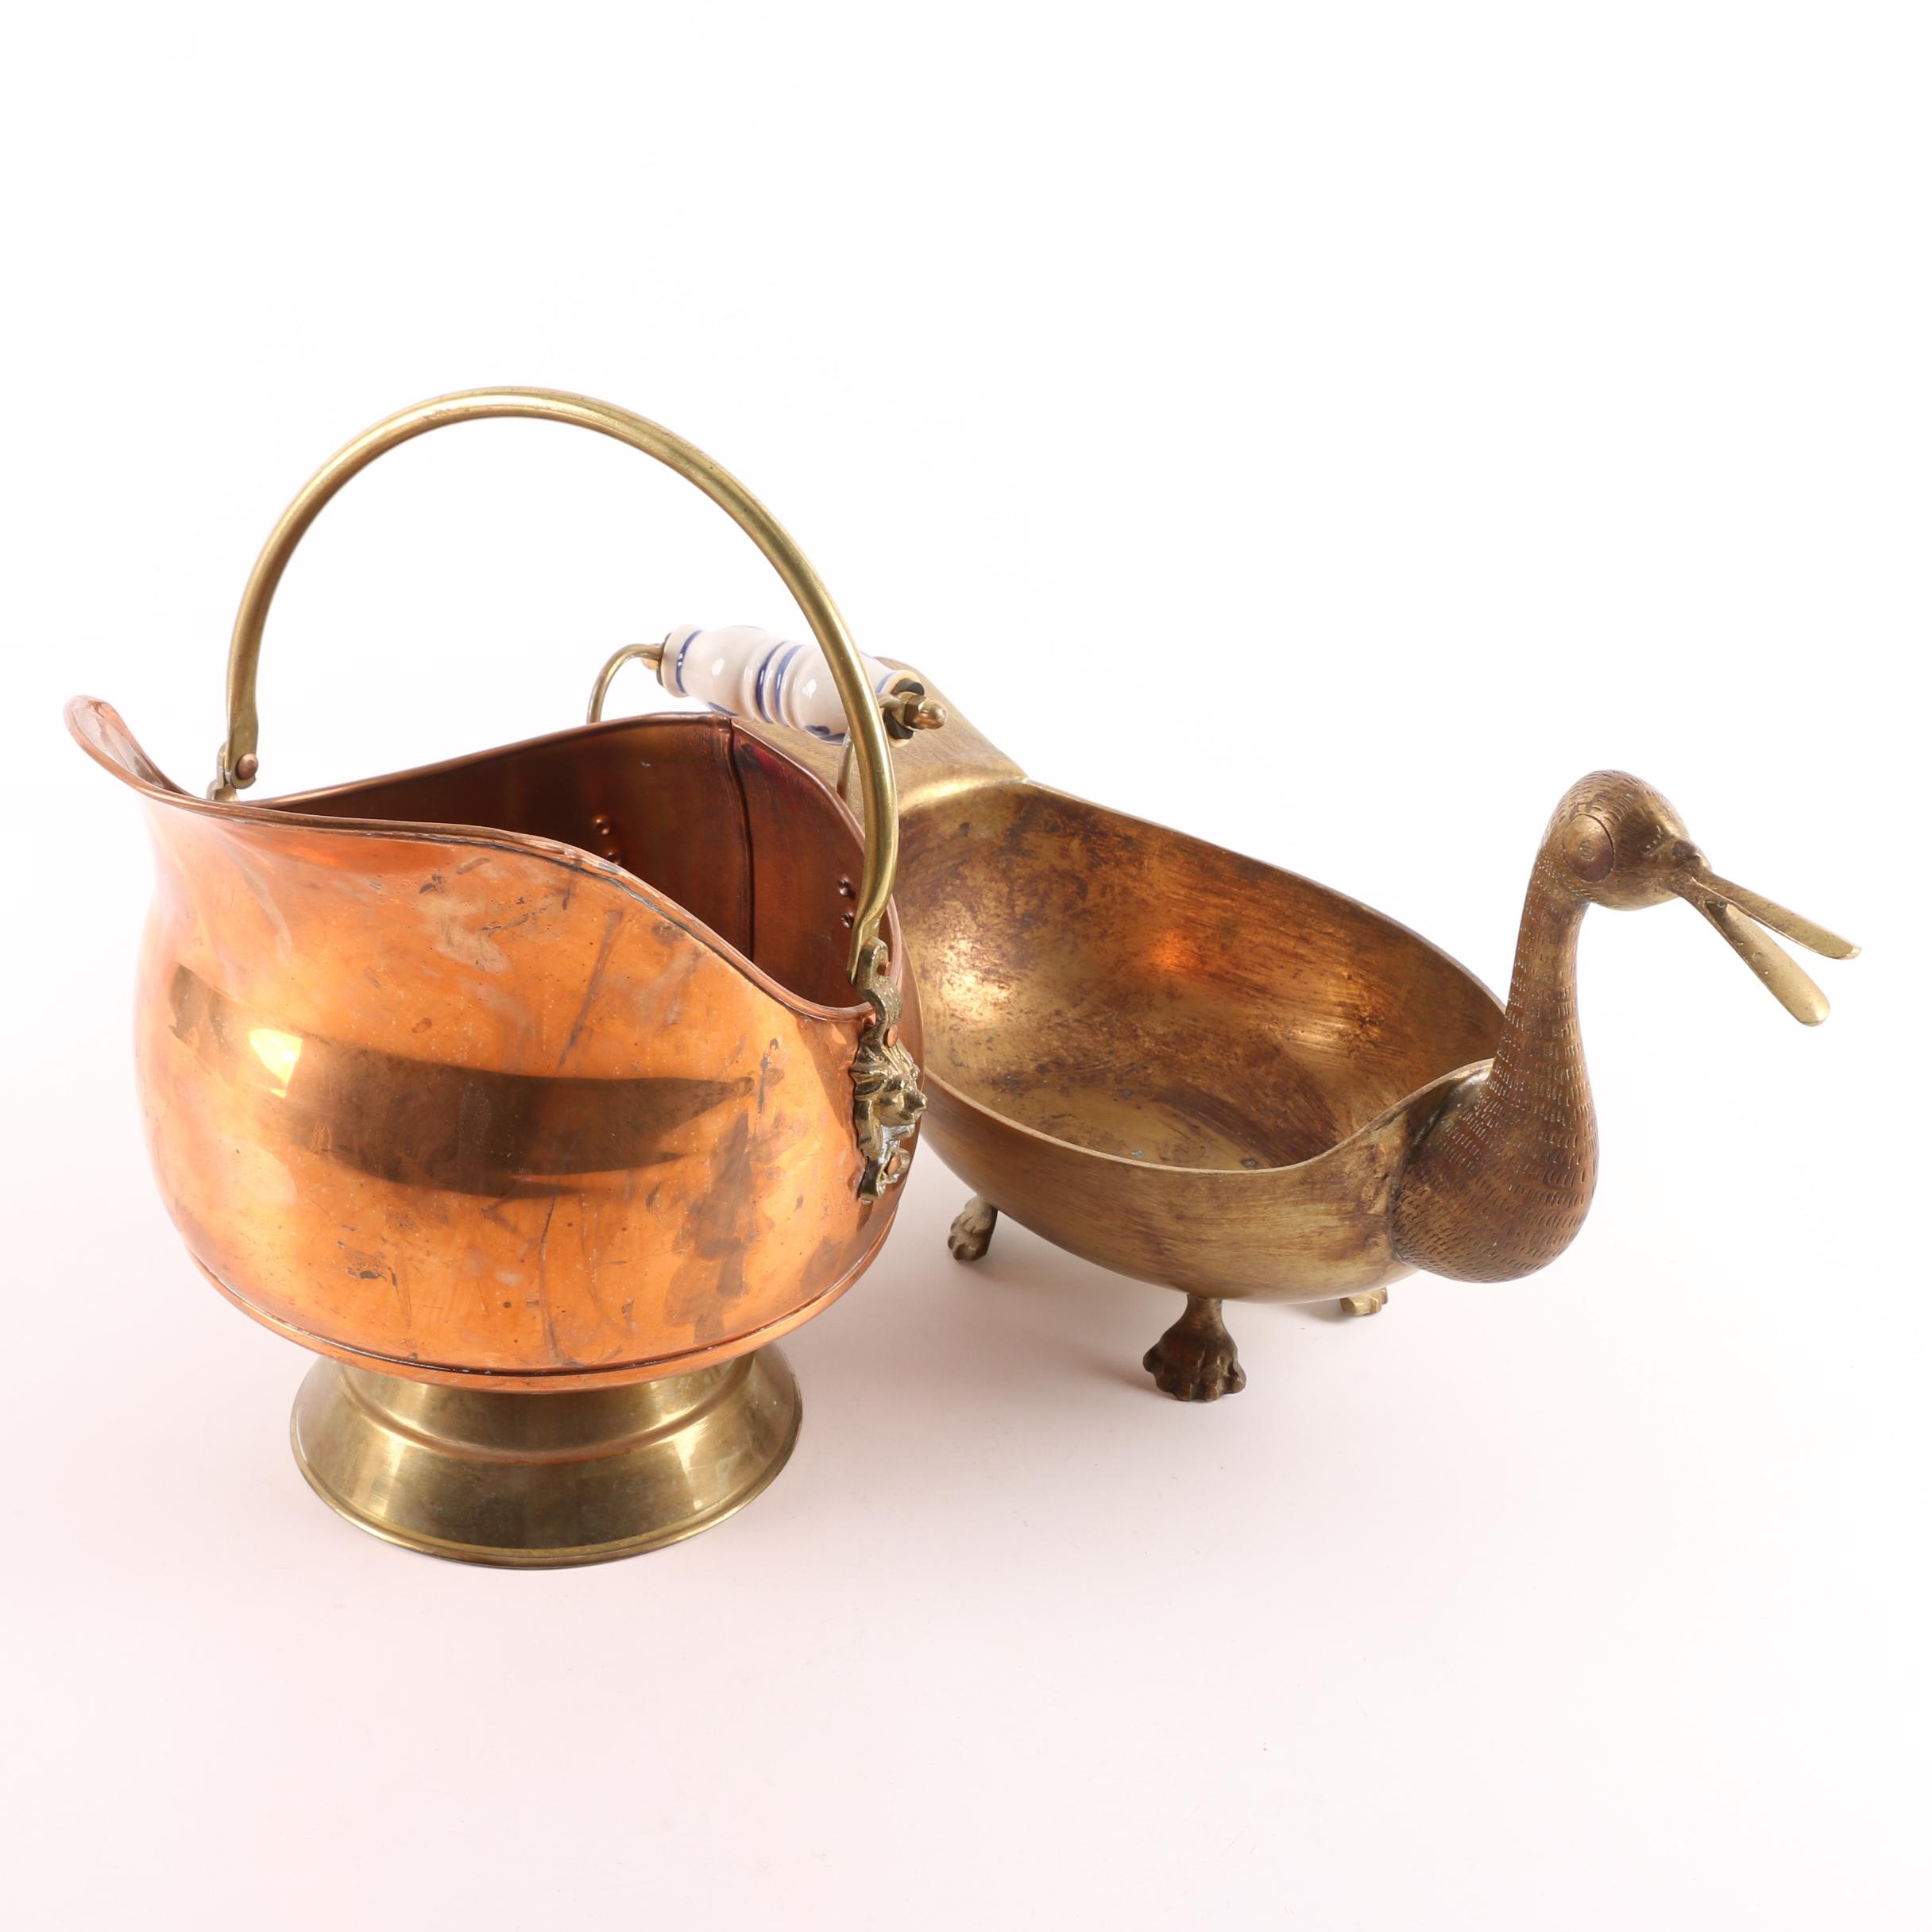 Copper Coal Scuttle with Duck Shaped Footed Brass Bowl